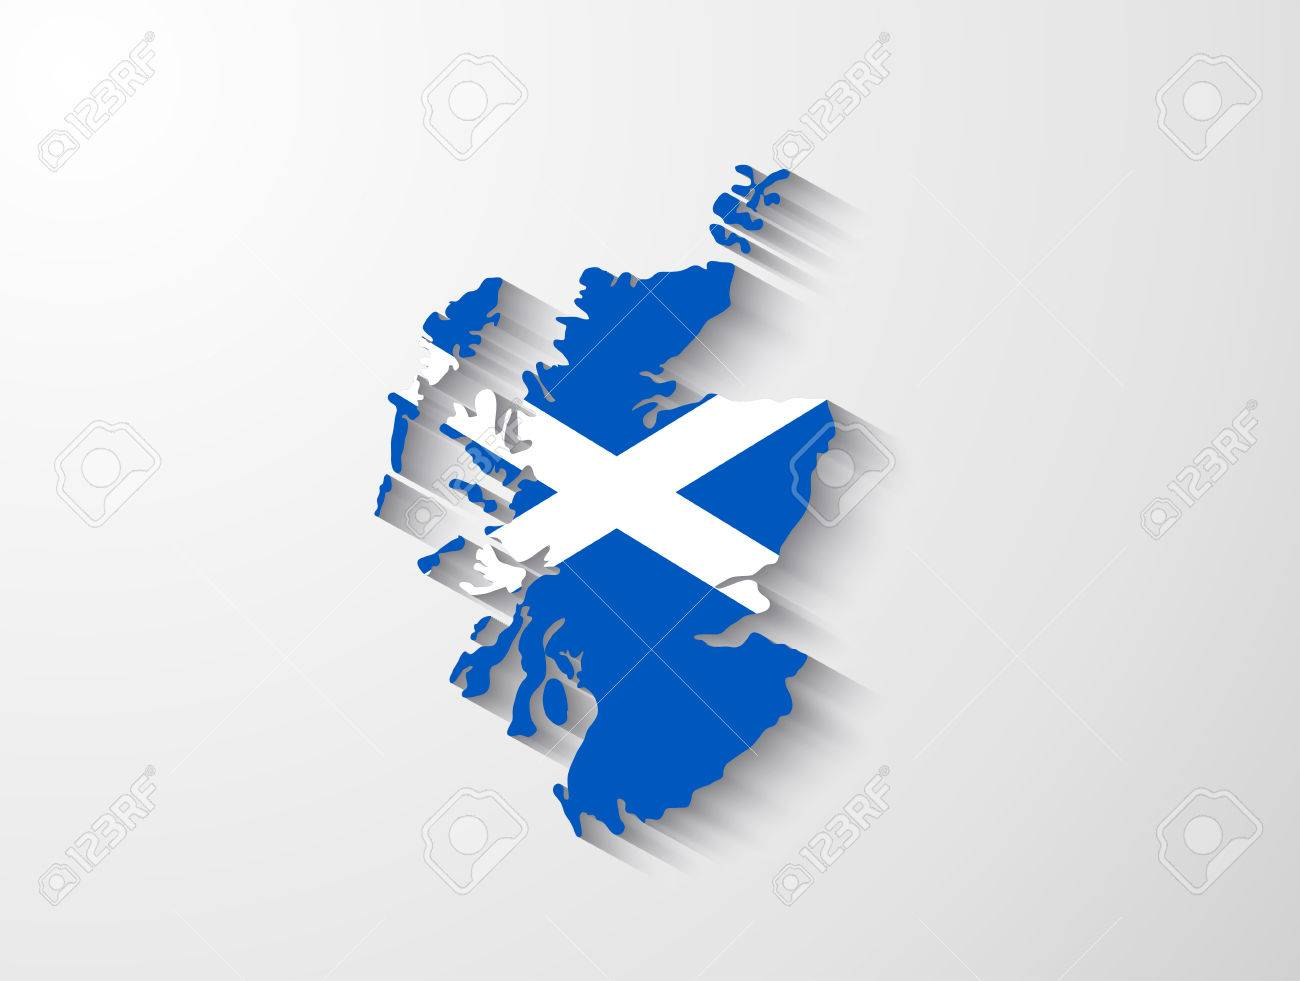 Scotland map with shadow effect - 31482859